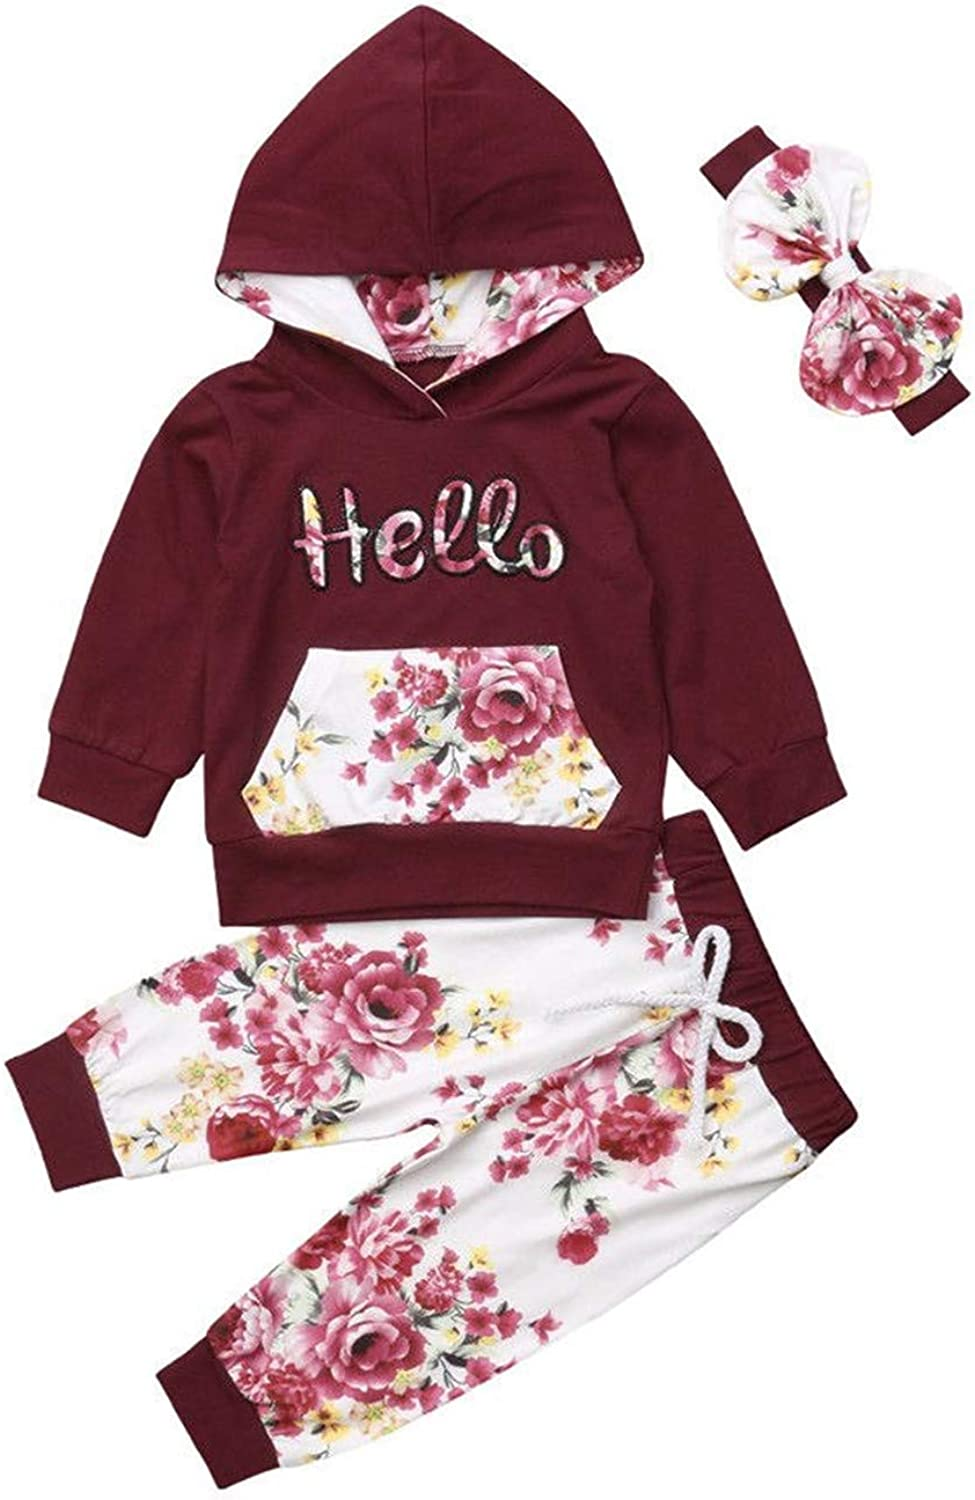 New Born Girls Clothing Set Long Sleeve Hoodie and Pants 3 pcs Outfit Cotton